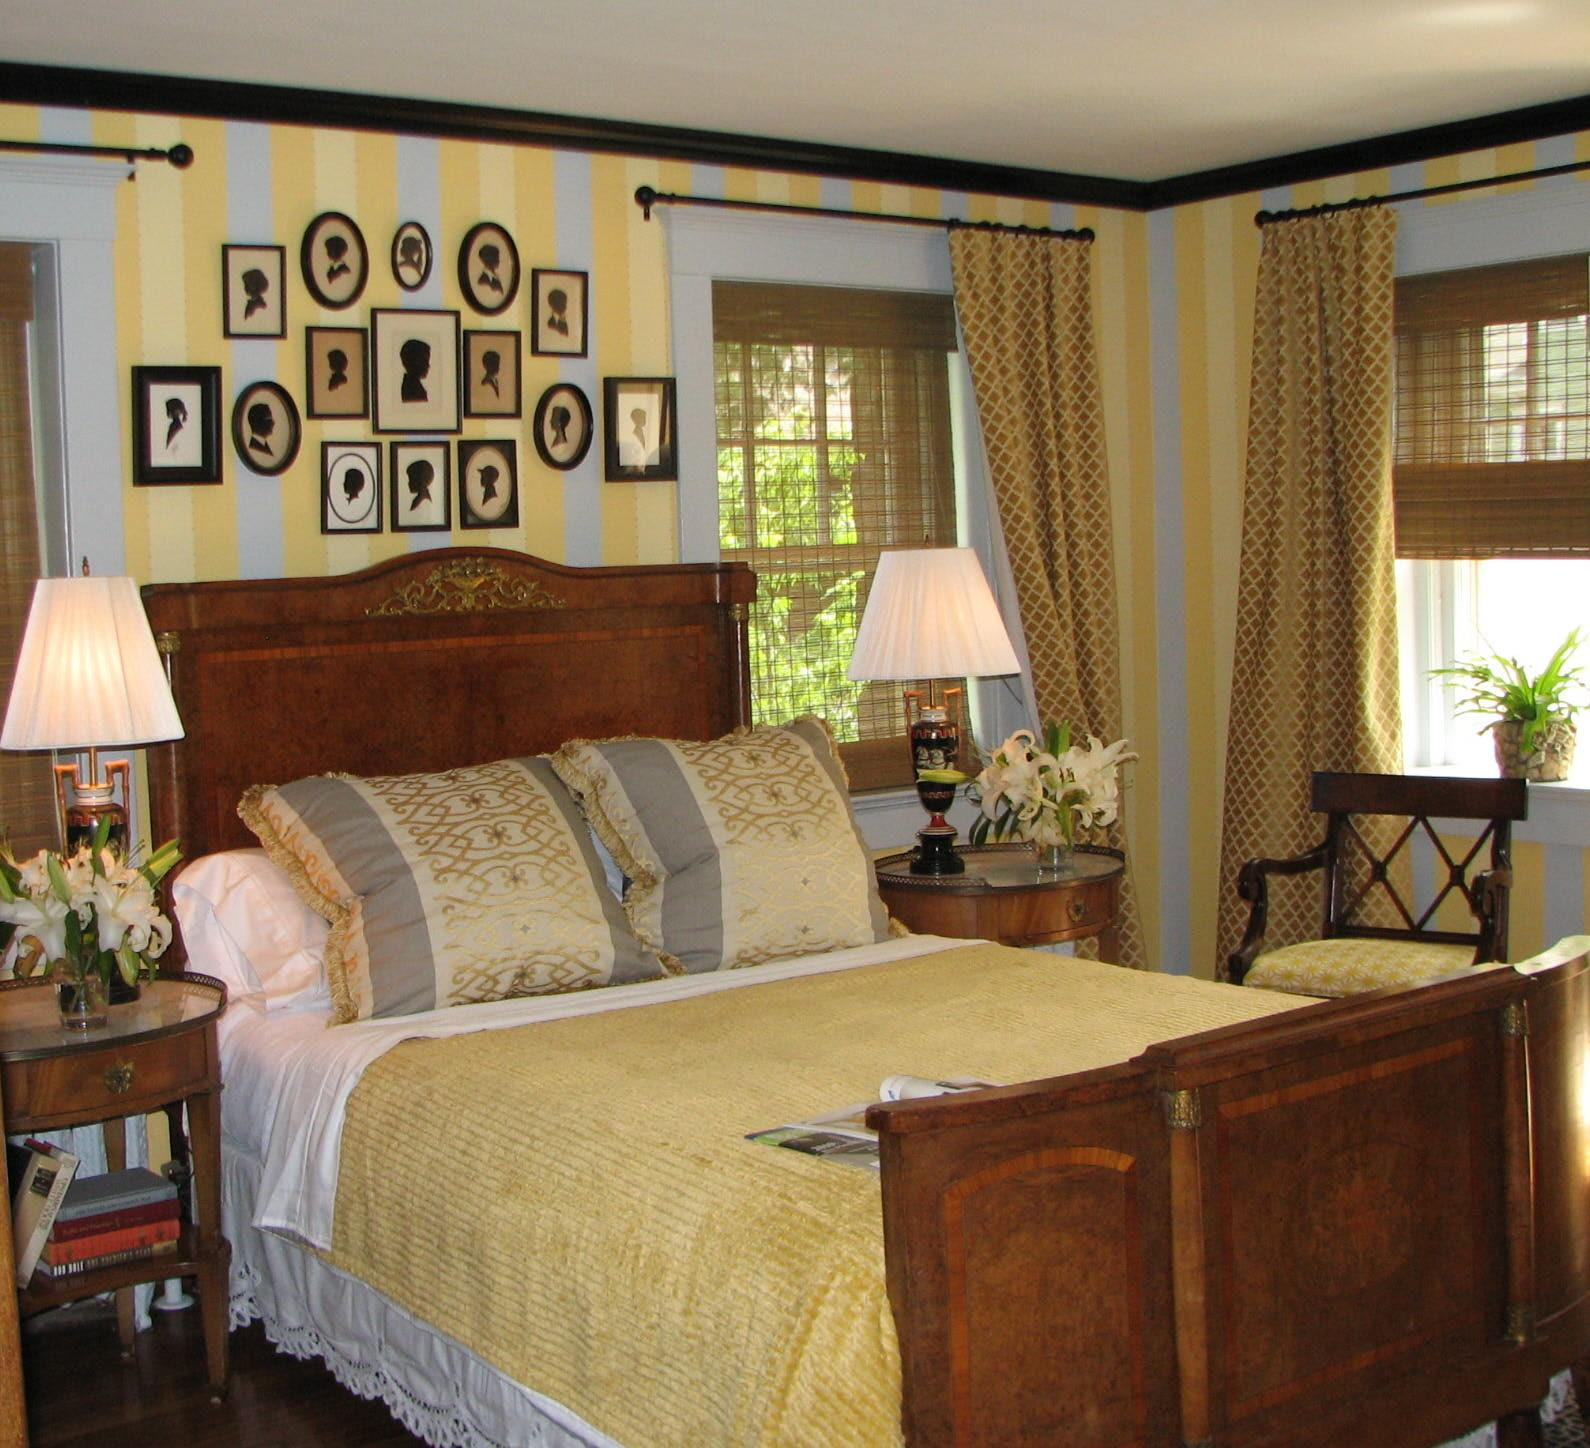 Bedroom Design Eclectic Home Decoration Live